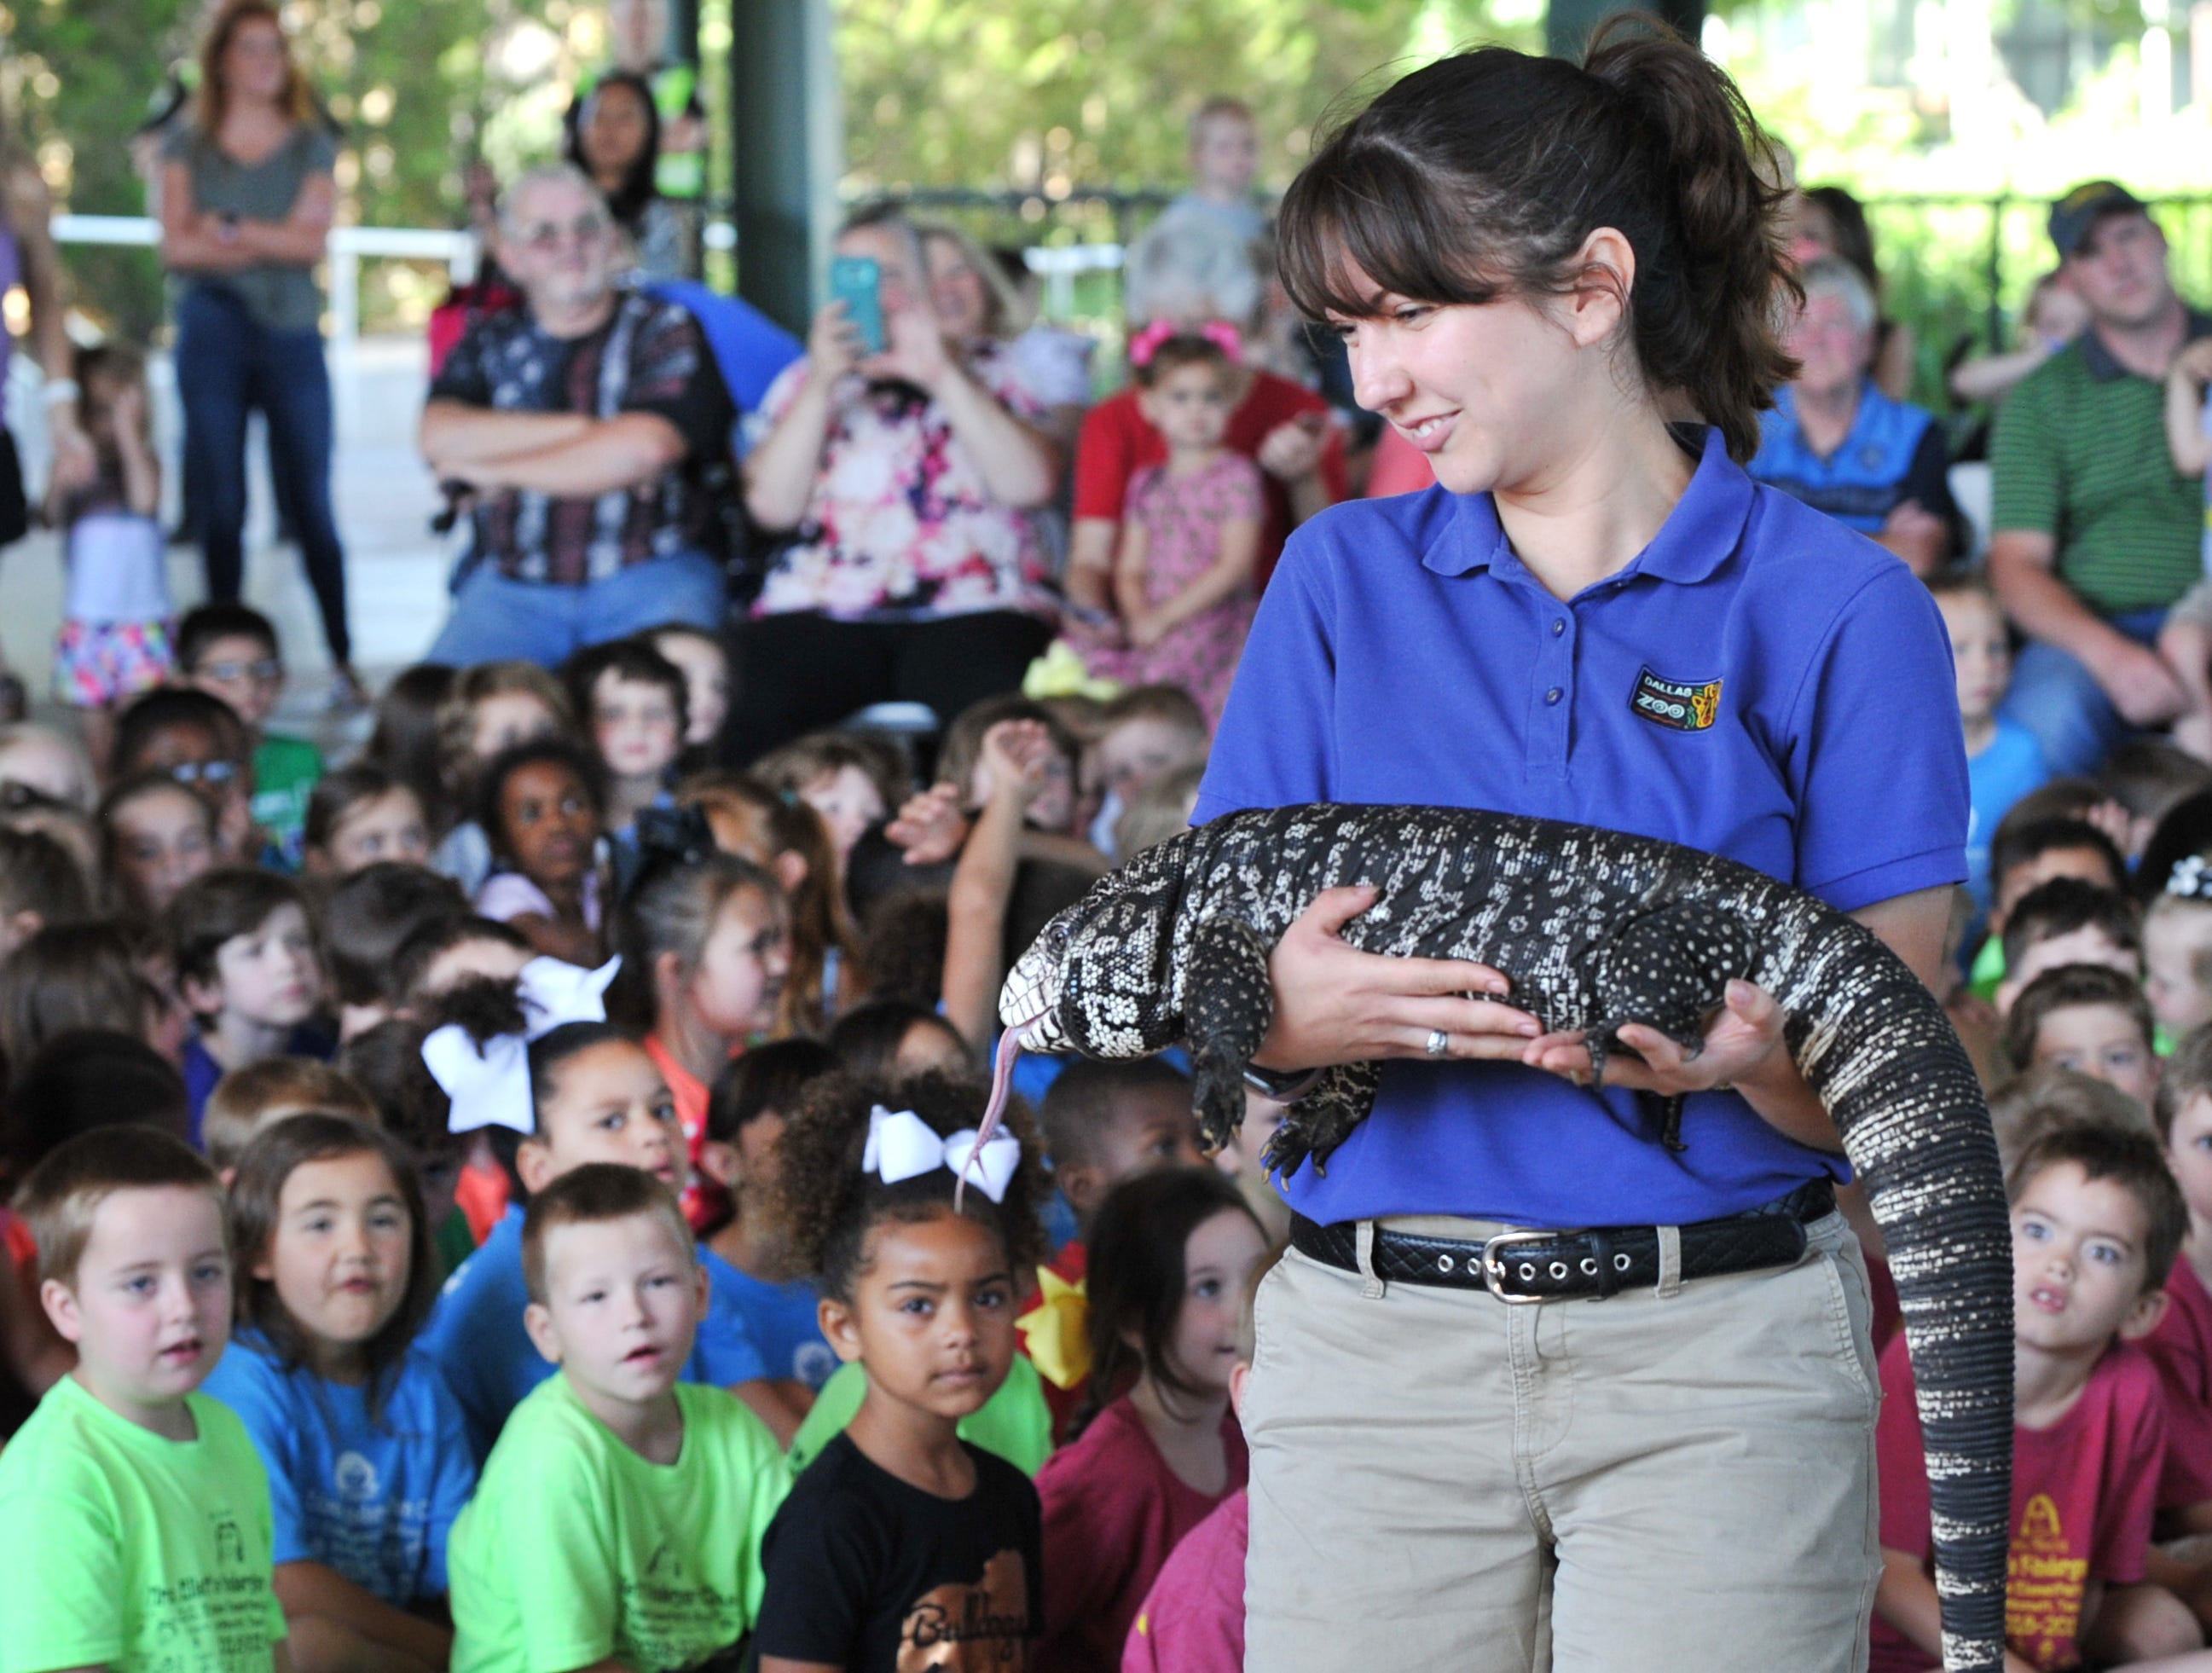 Dallas Zoo outreach specialist, Dianne Rivas shows Spock, a black and white Tegu, to a group of kids, Tuesday during the zoo's trip to the River Bend Nature Center.